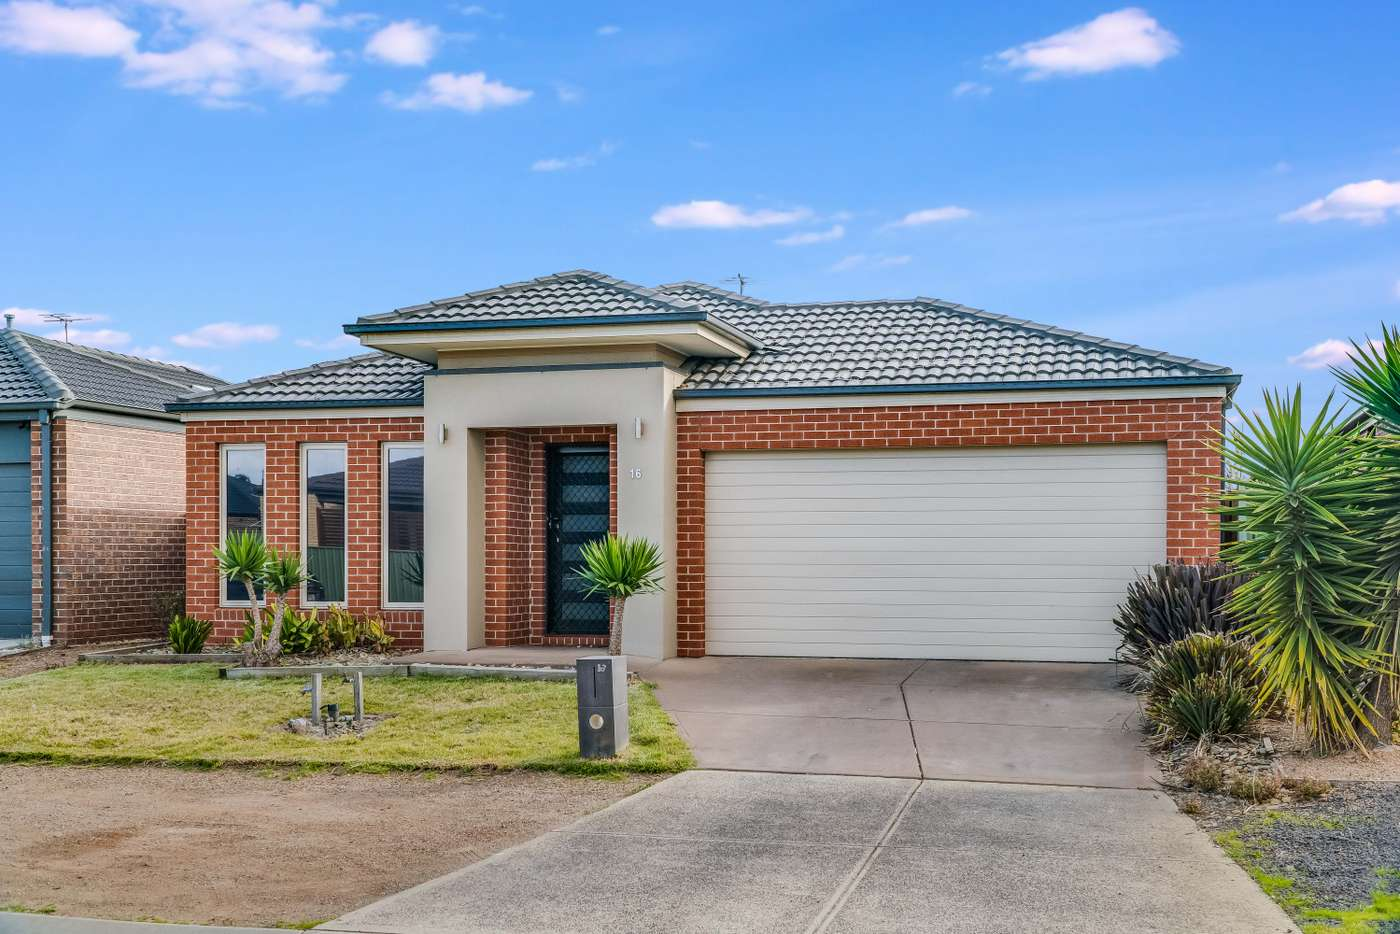 Main view of Homely house listing, 16 Reddington  Way, Wyndham Vale VIC 3024